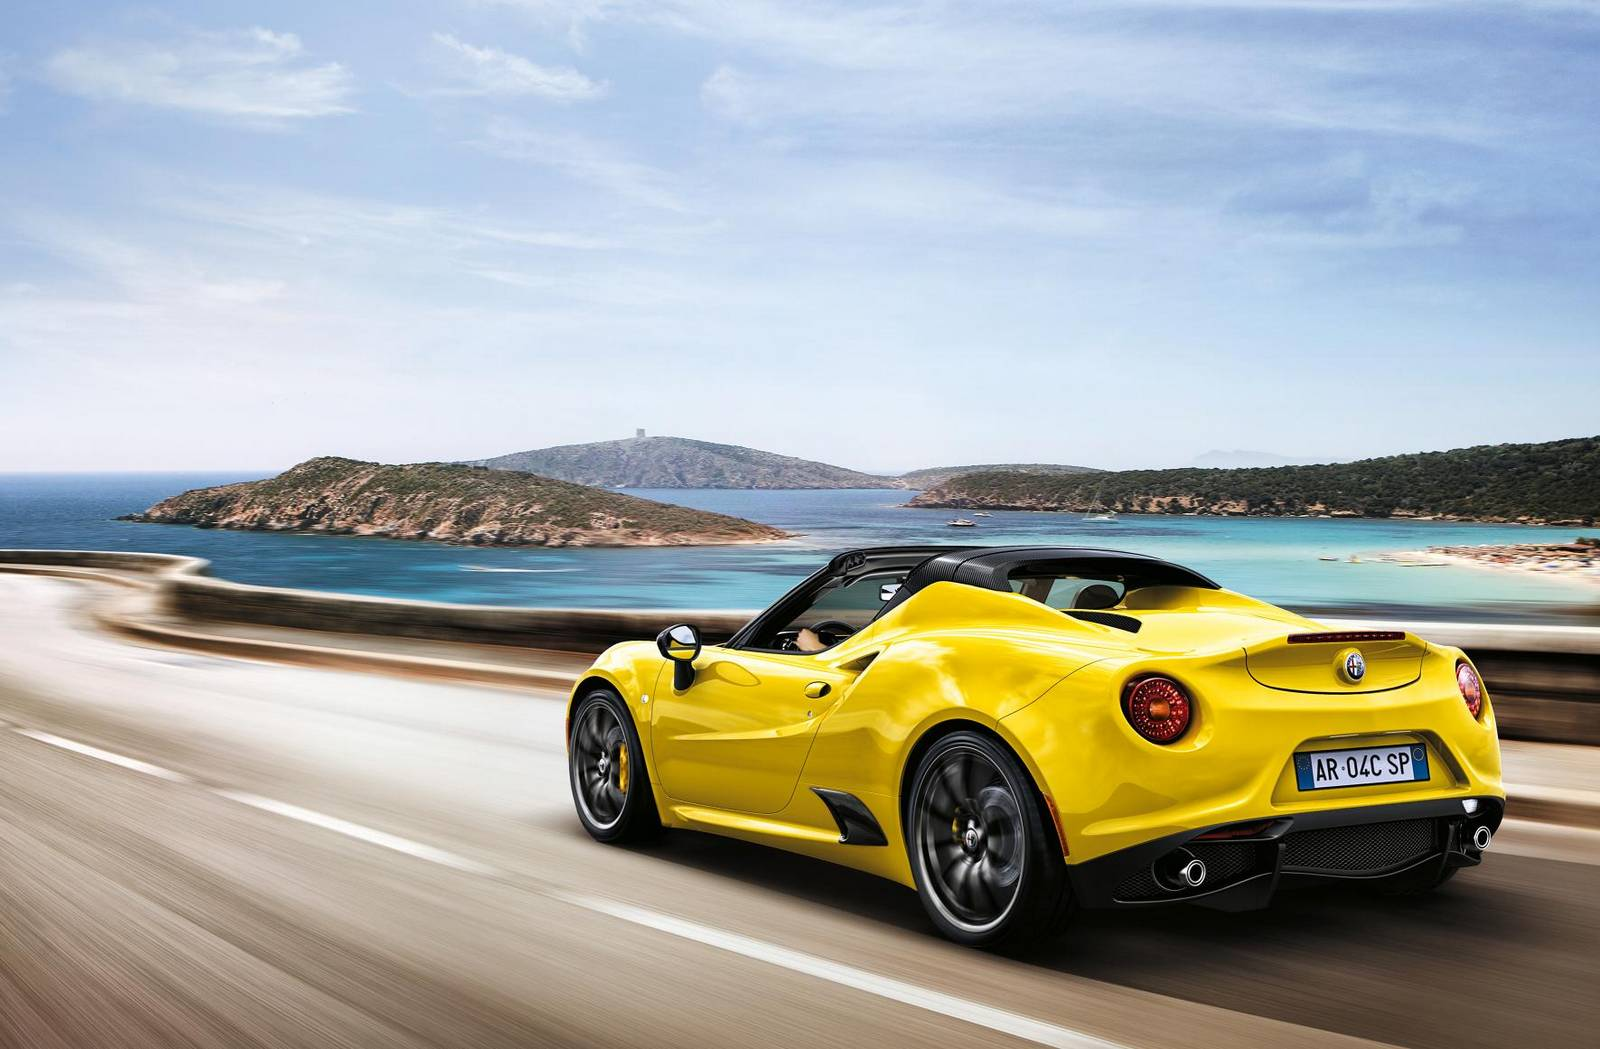 Alfa Romeo 4C Spider Priced from £59,500 in the UK